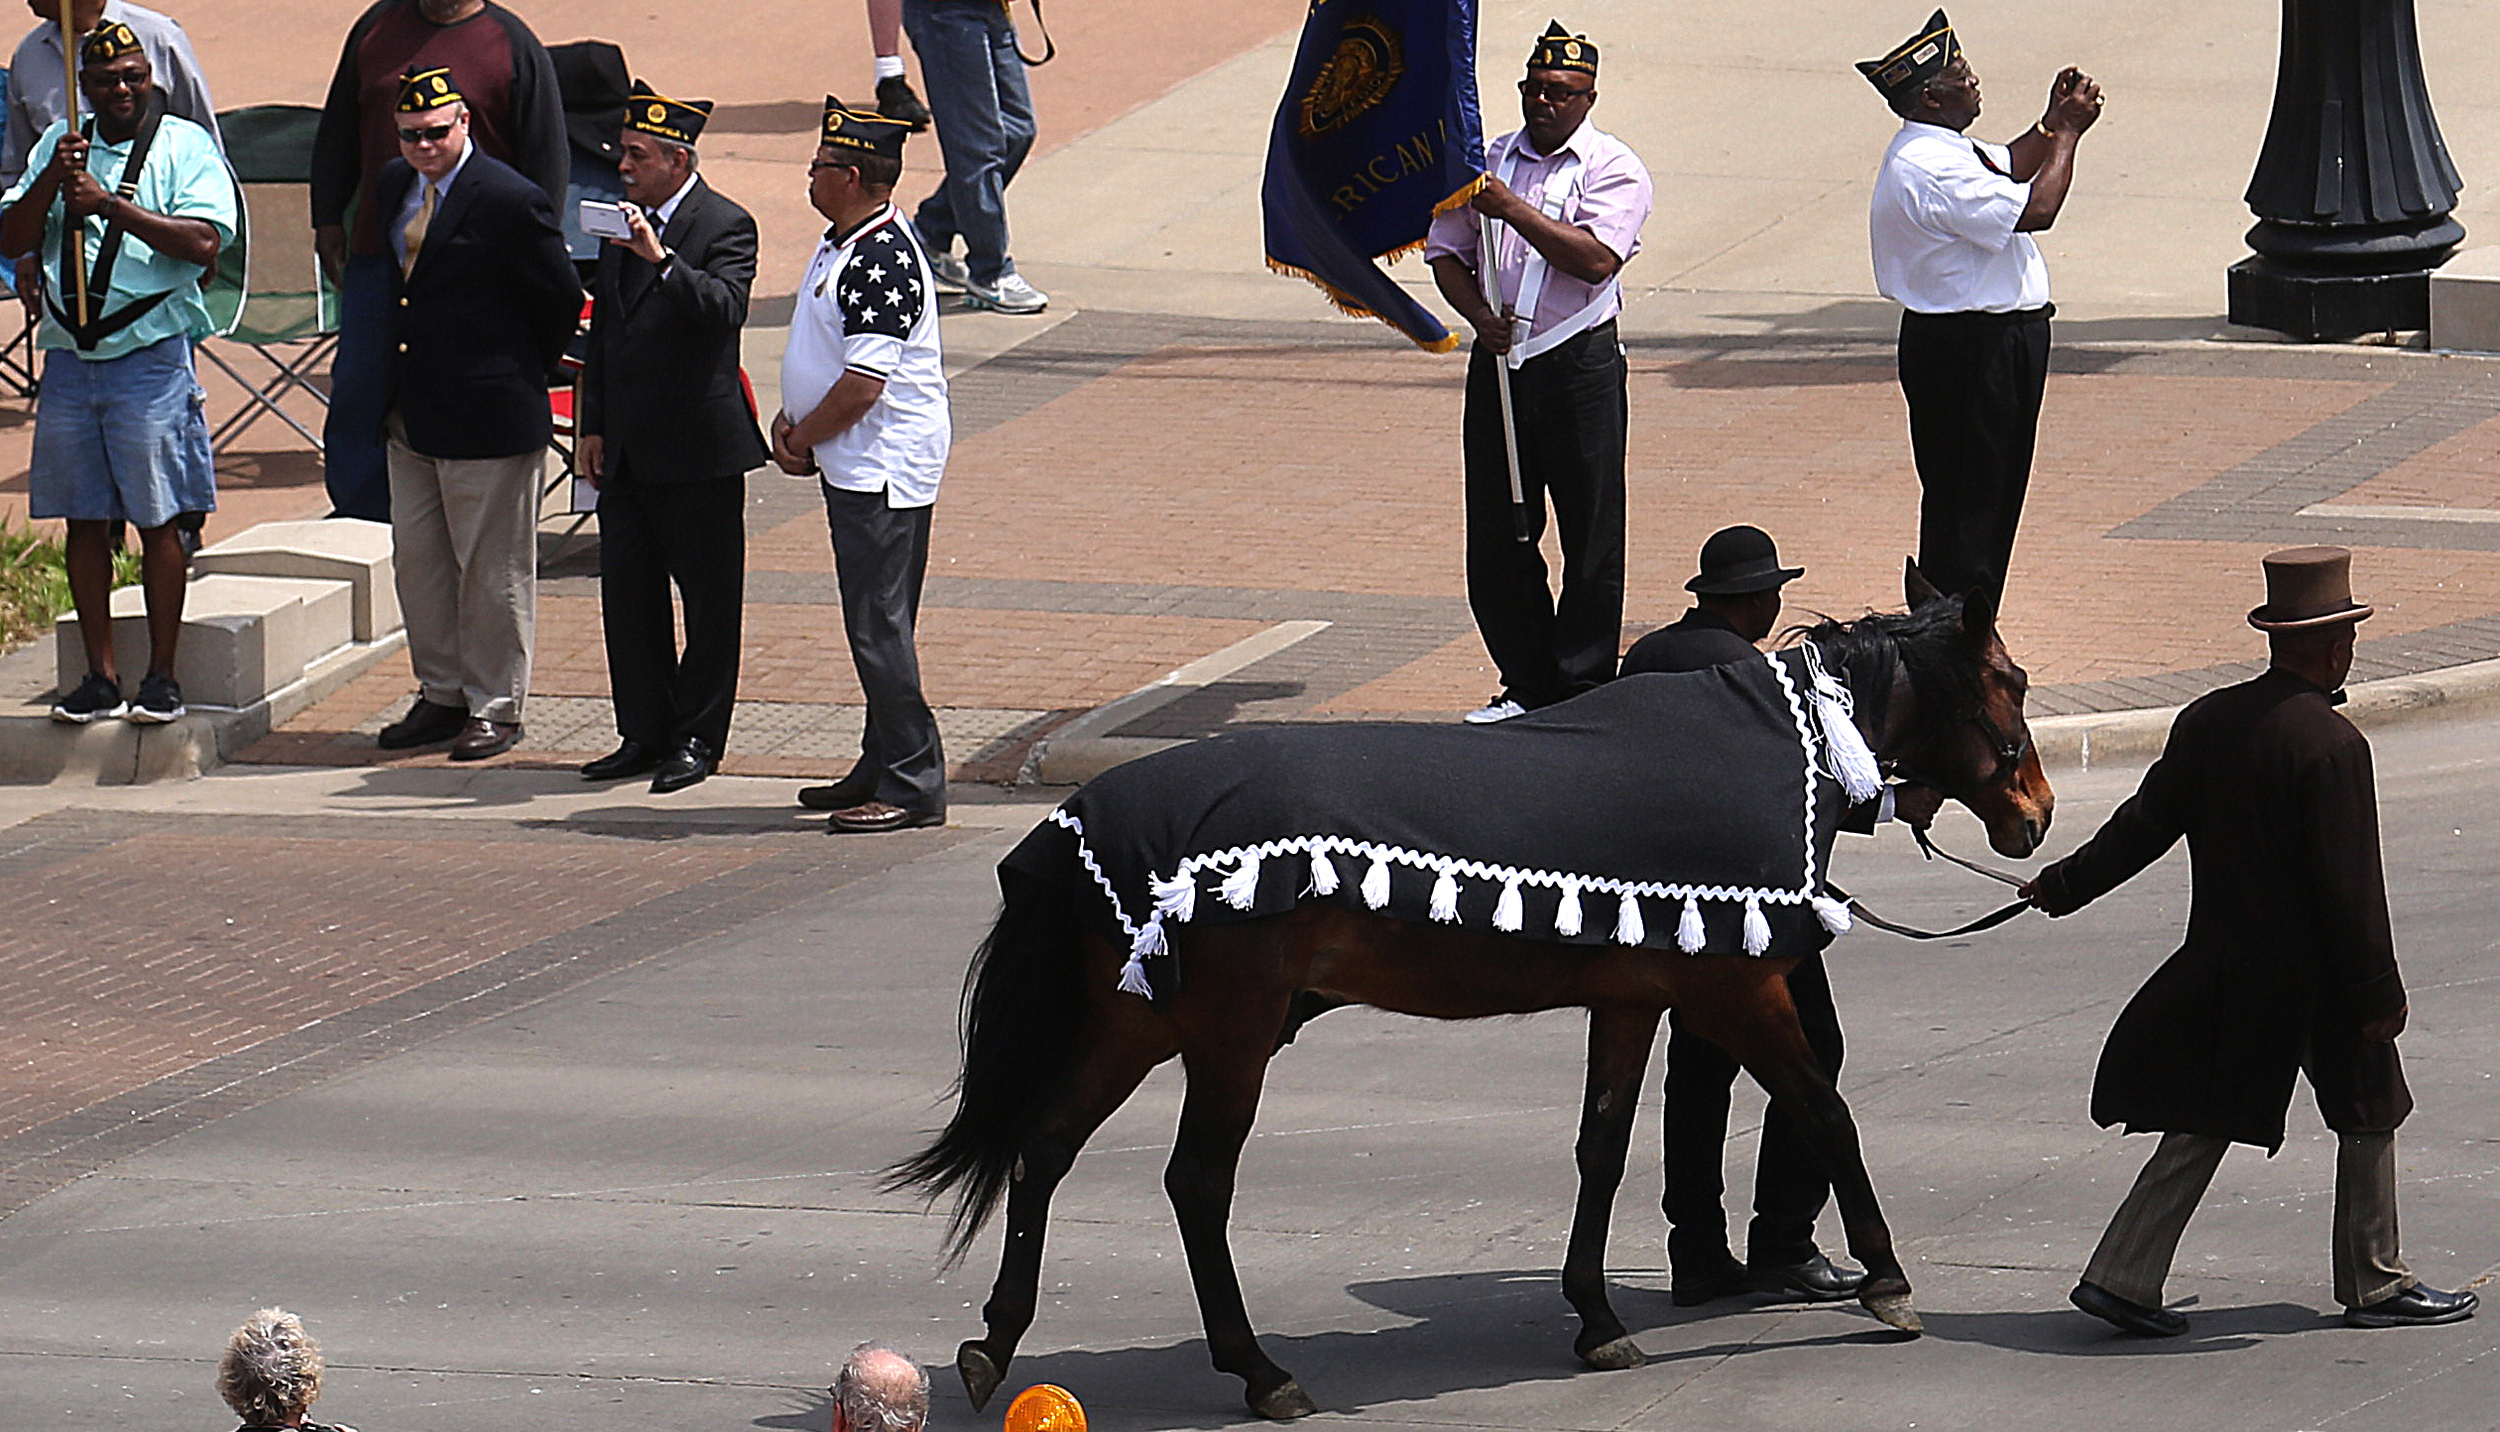 """Myrel Simmons of Springfield, leads a horse representing """"Old Bob,"""" which was owned by Lincoln and walked in the funeral procession 150 years ago. Simmons was portraying the historical figure Rev. Henry Brown. David Spencer/The State Journal-Register"""